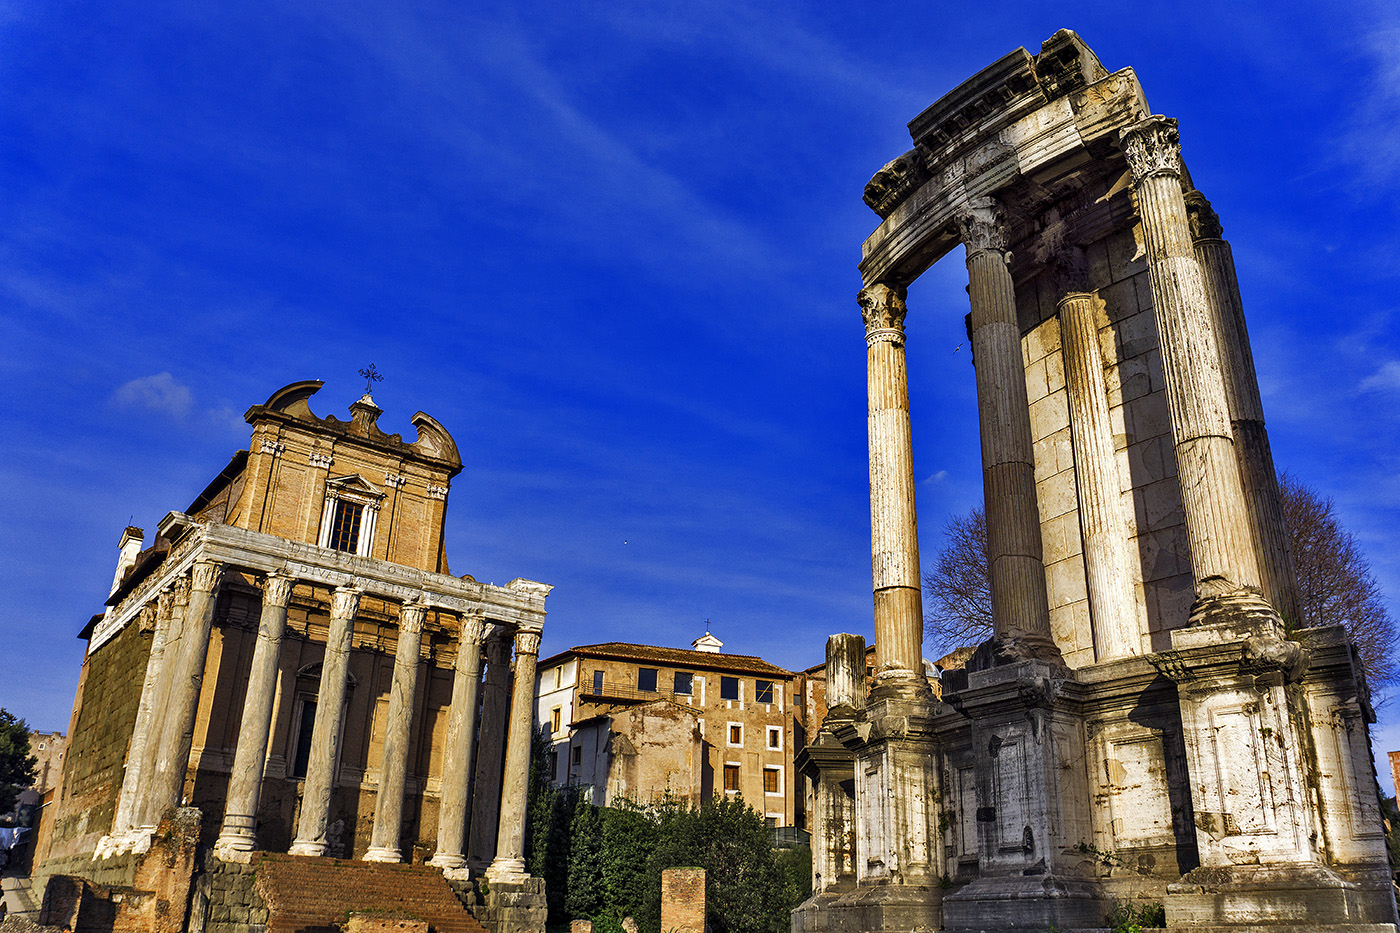 Temple of Antoninus and Faustina and Temple of Vesta at the Roman Forum in Rome,Italy